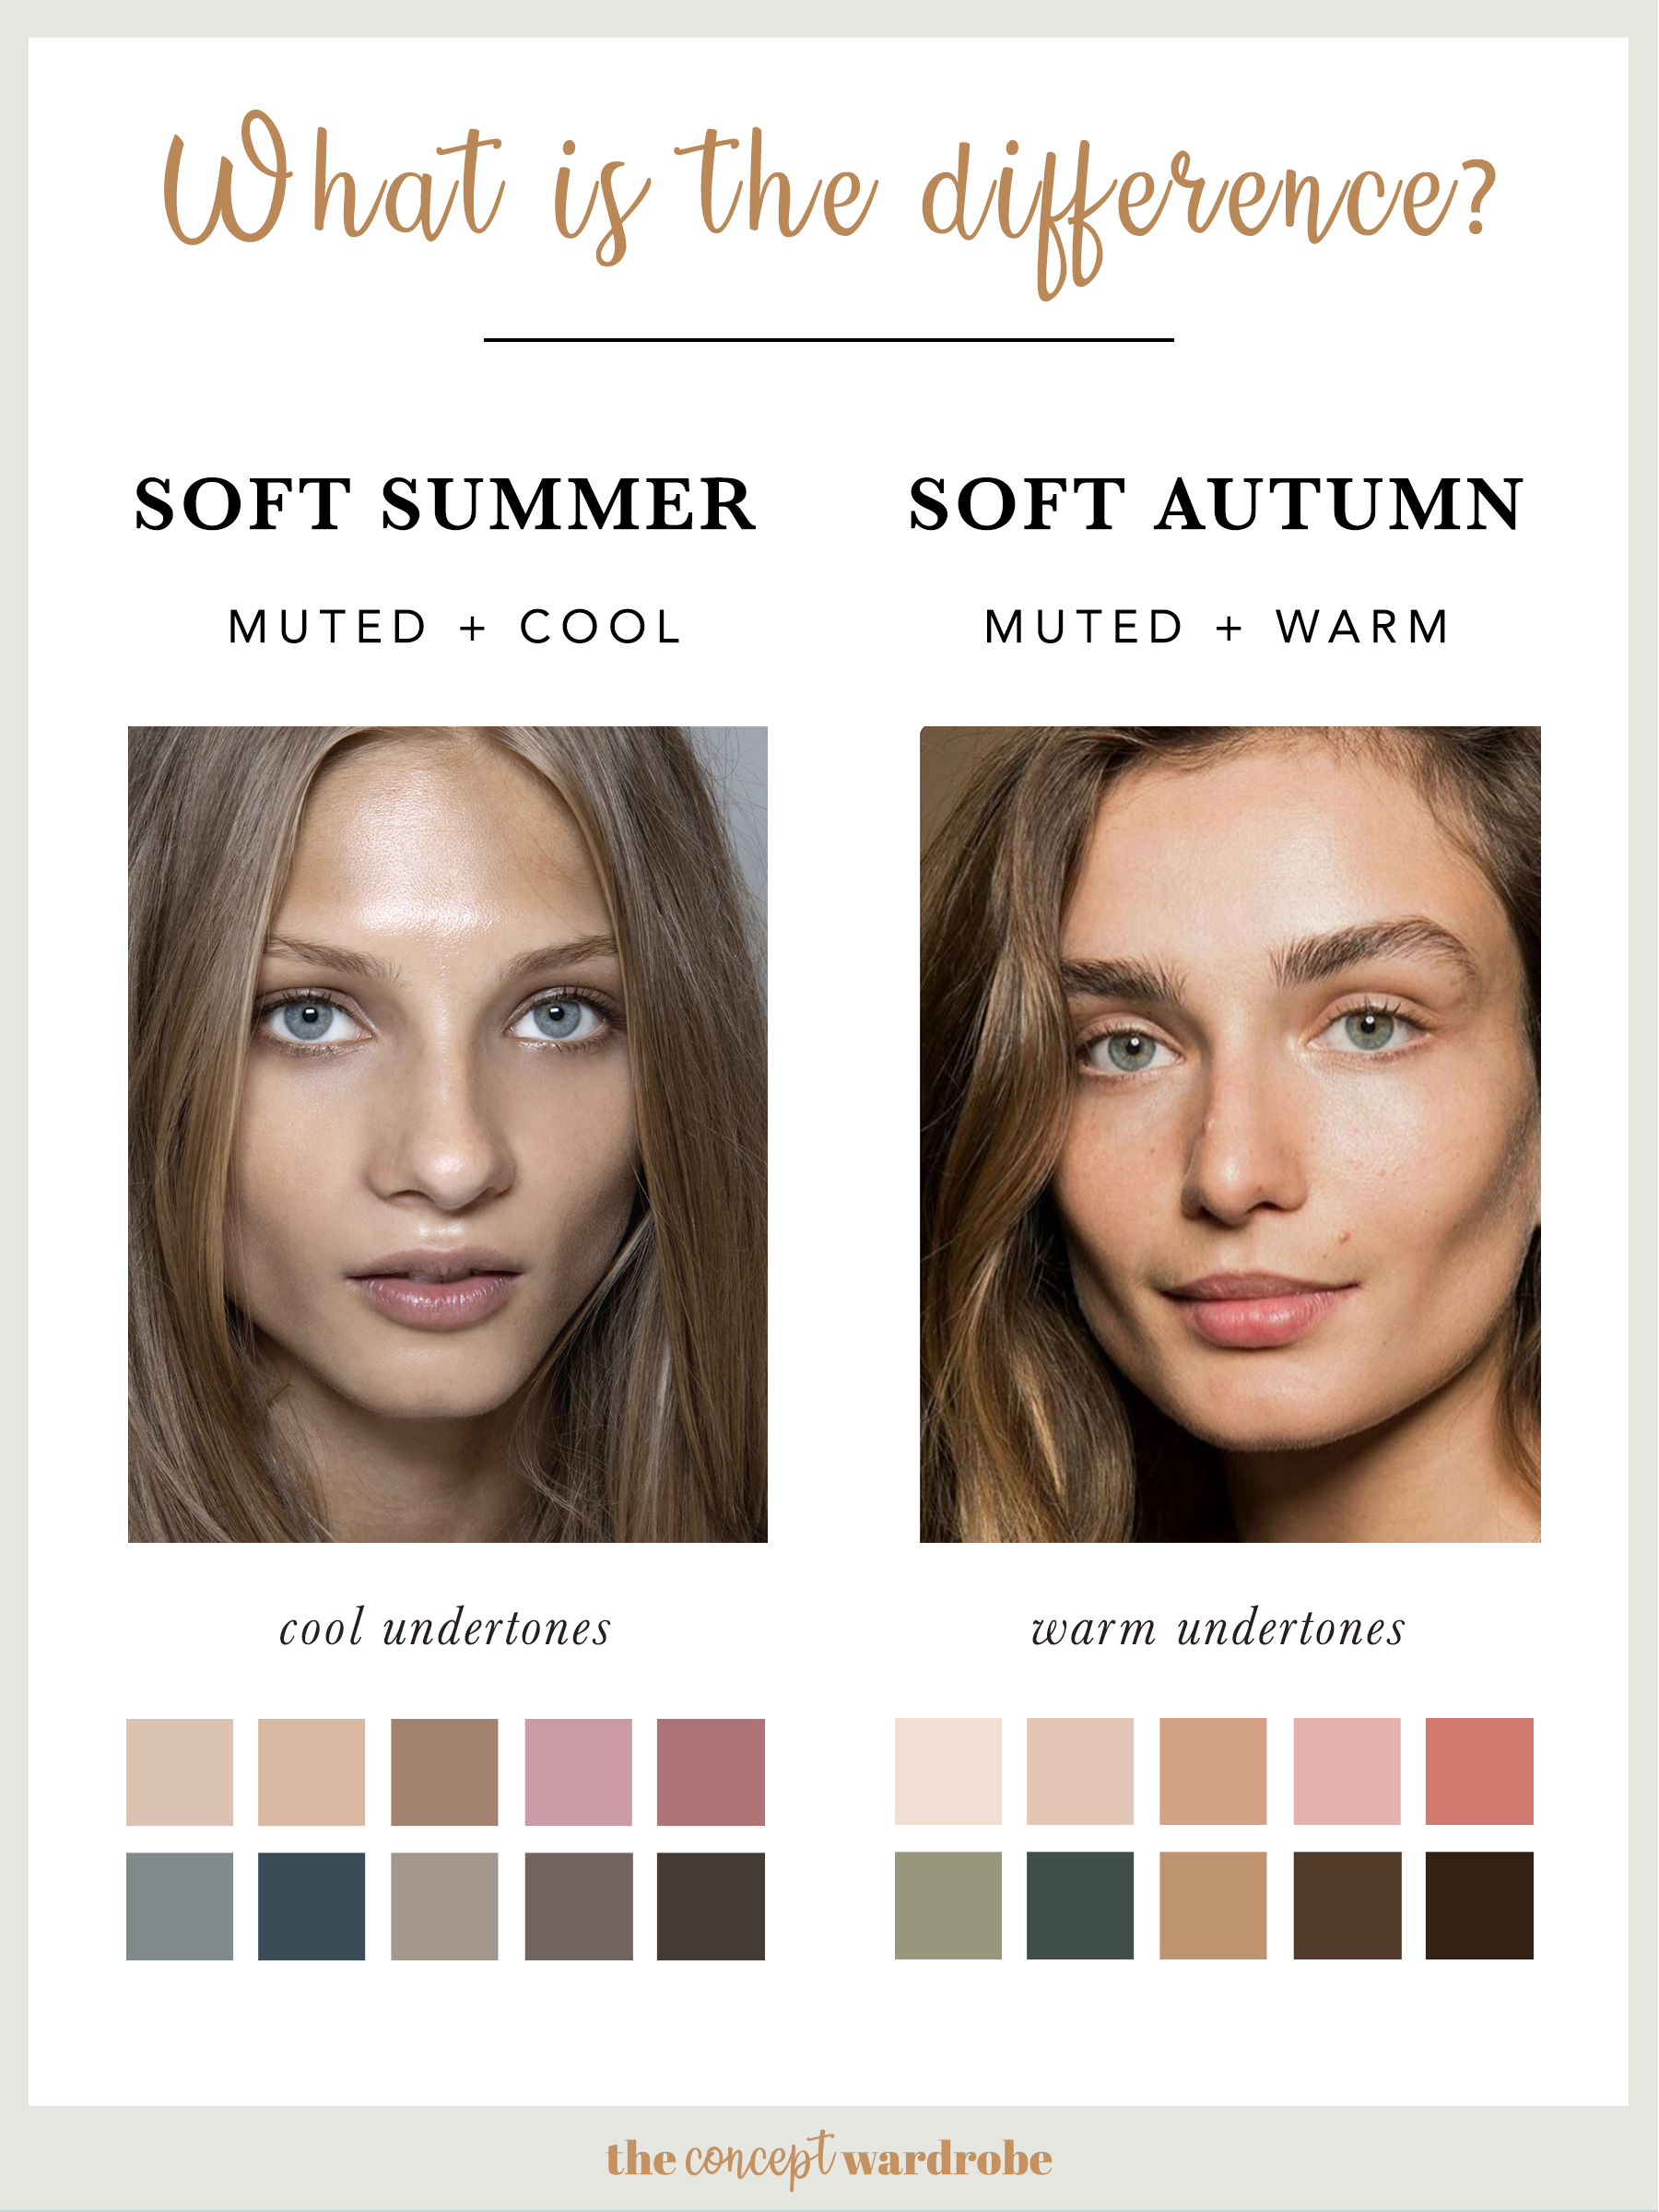 What Is The Difference Between Soft Summer And Soft Autumn Autumncolors The Concept Wardrobe Soft Summers Can E Soft Autumn Soft Summer Soft Summer Palette